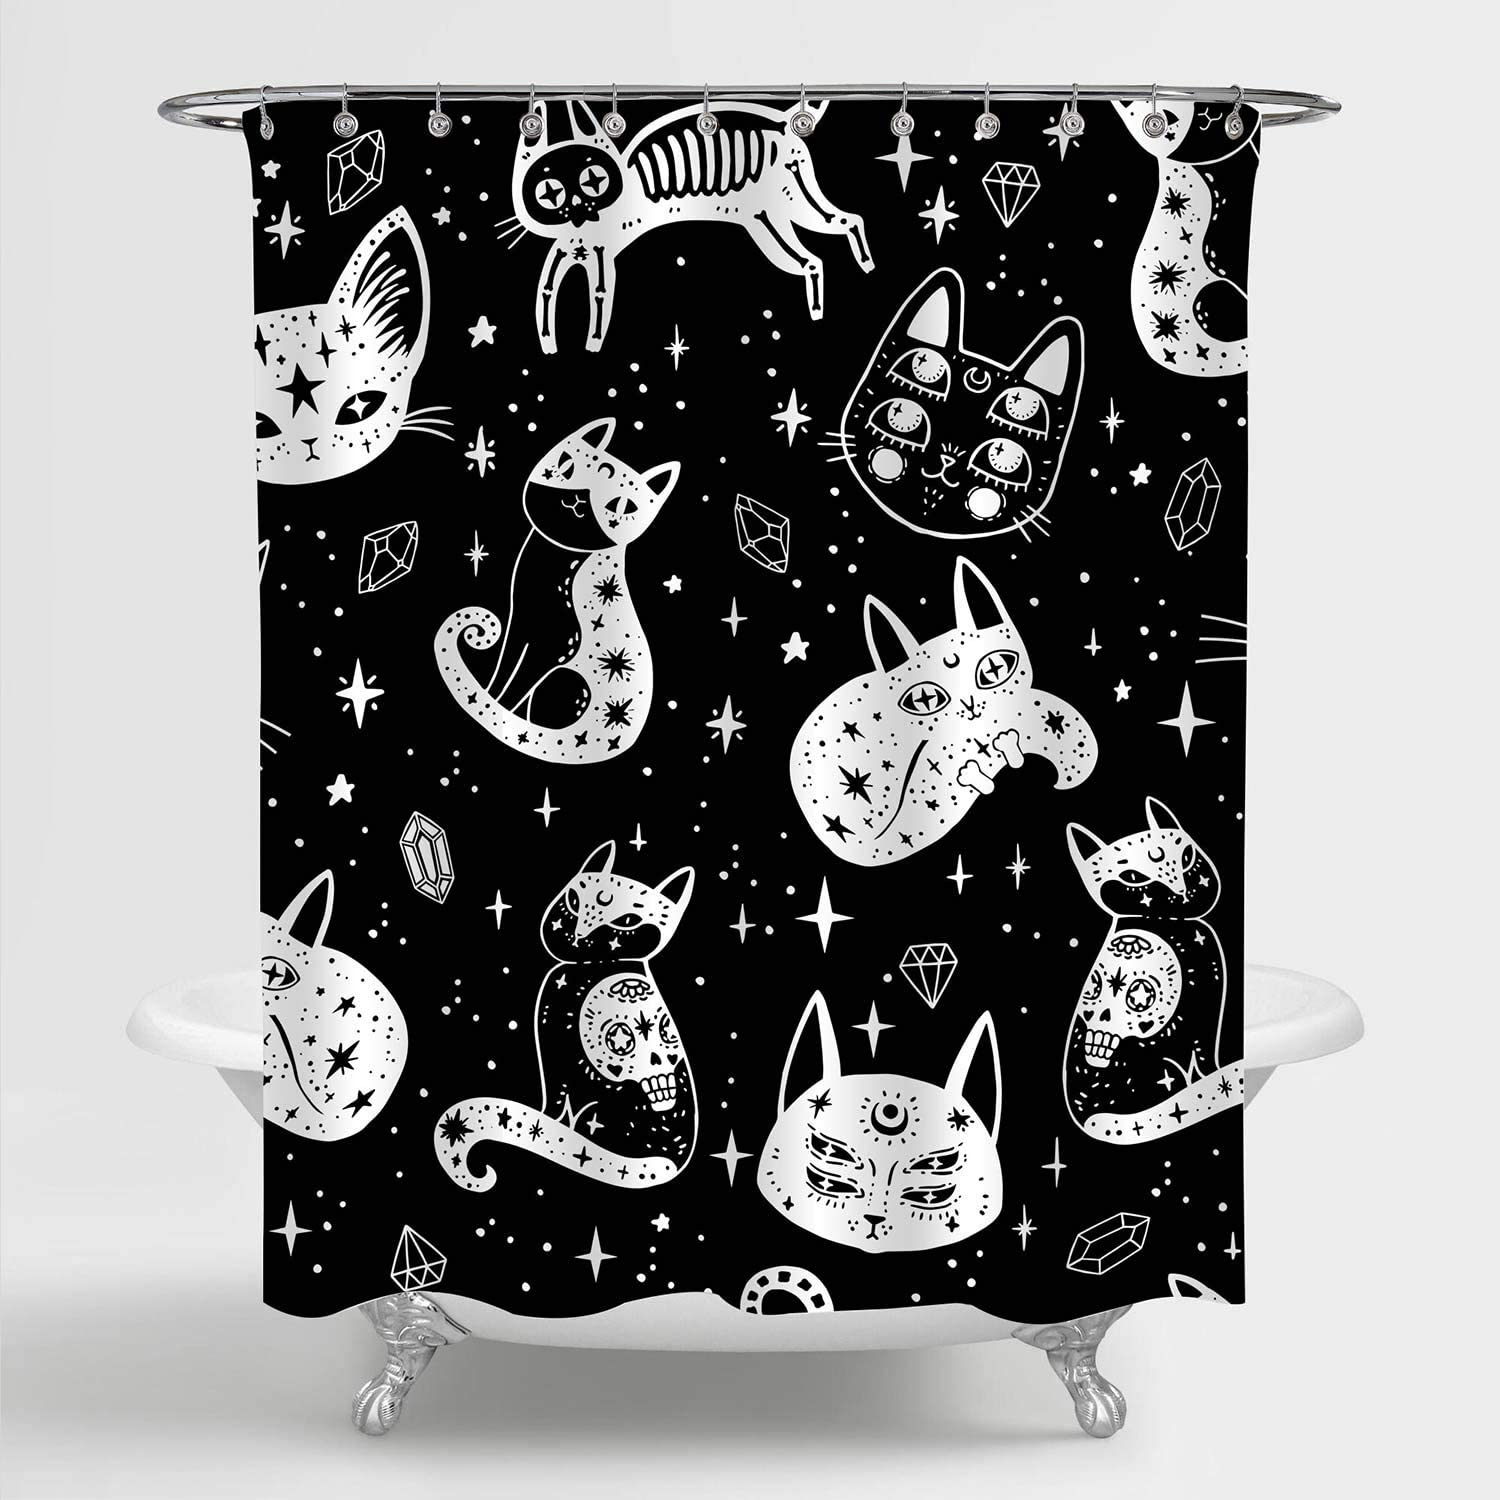 """MitoVilla Witch's Cat Shower Curtain for Mysterious Bathroom Decor, Cat and Sugar Skull Bathroom Accessories for Halloween for Women, Men, Kids and Cat Lovers, Black White, 72"""" W x 72"""" L"""